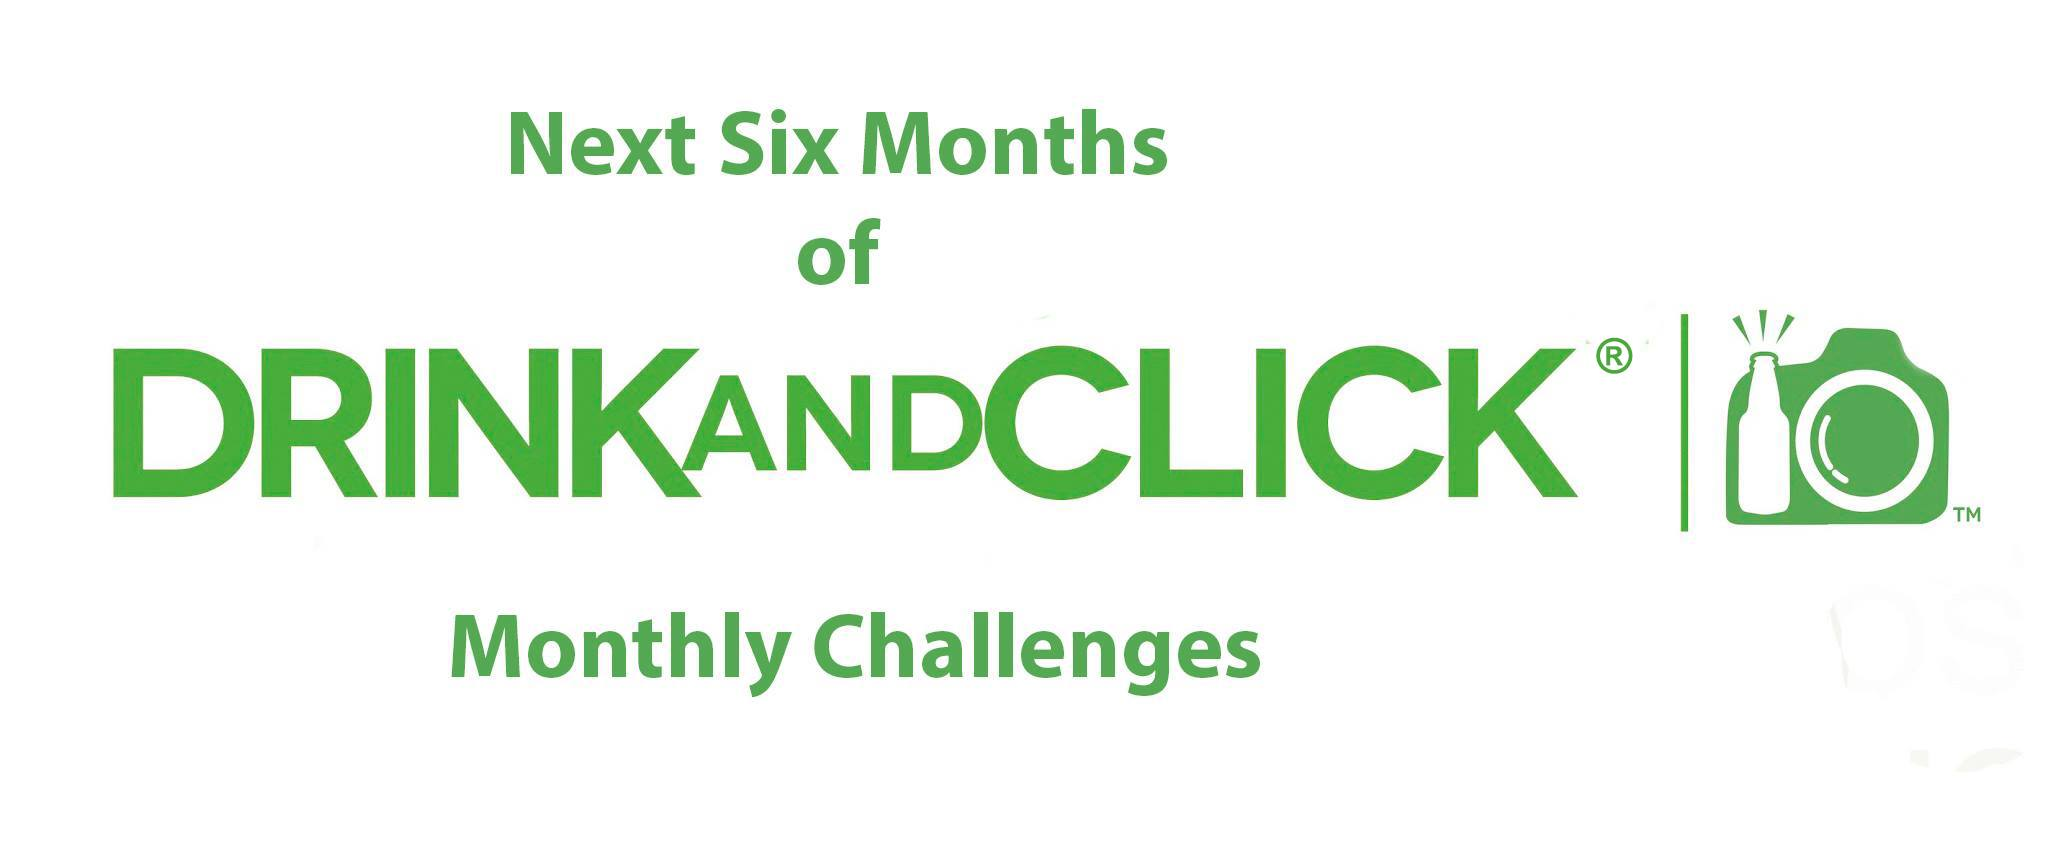 785dc16b713a 2019 - Next Six Months of Drink and Click® Monthly Challenges ...